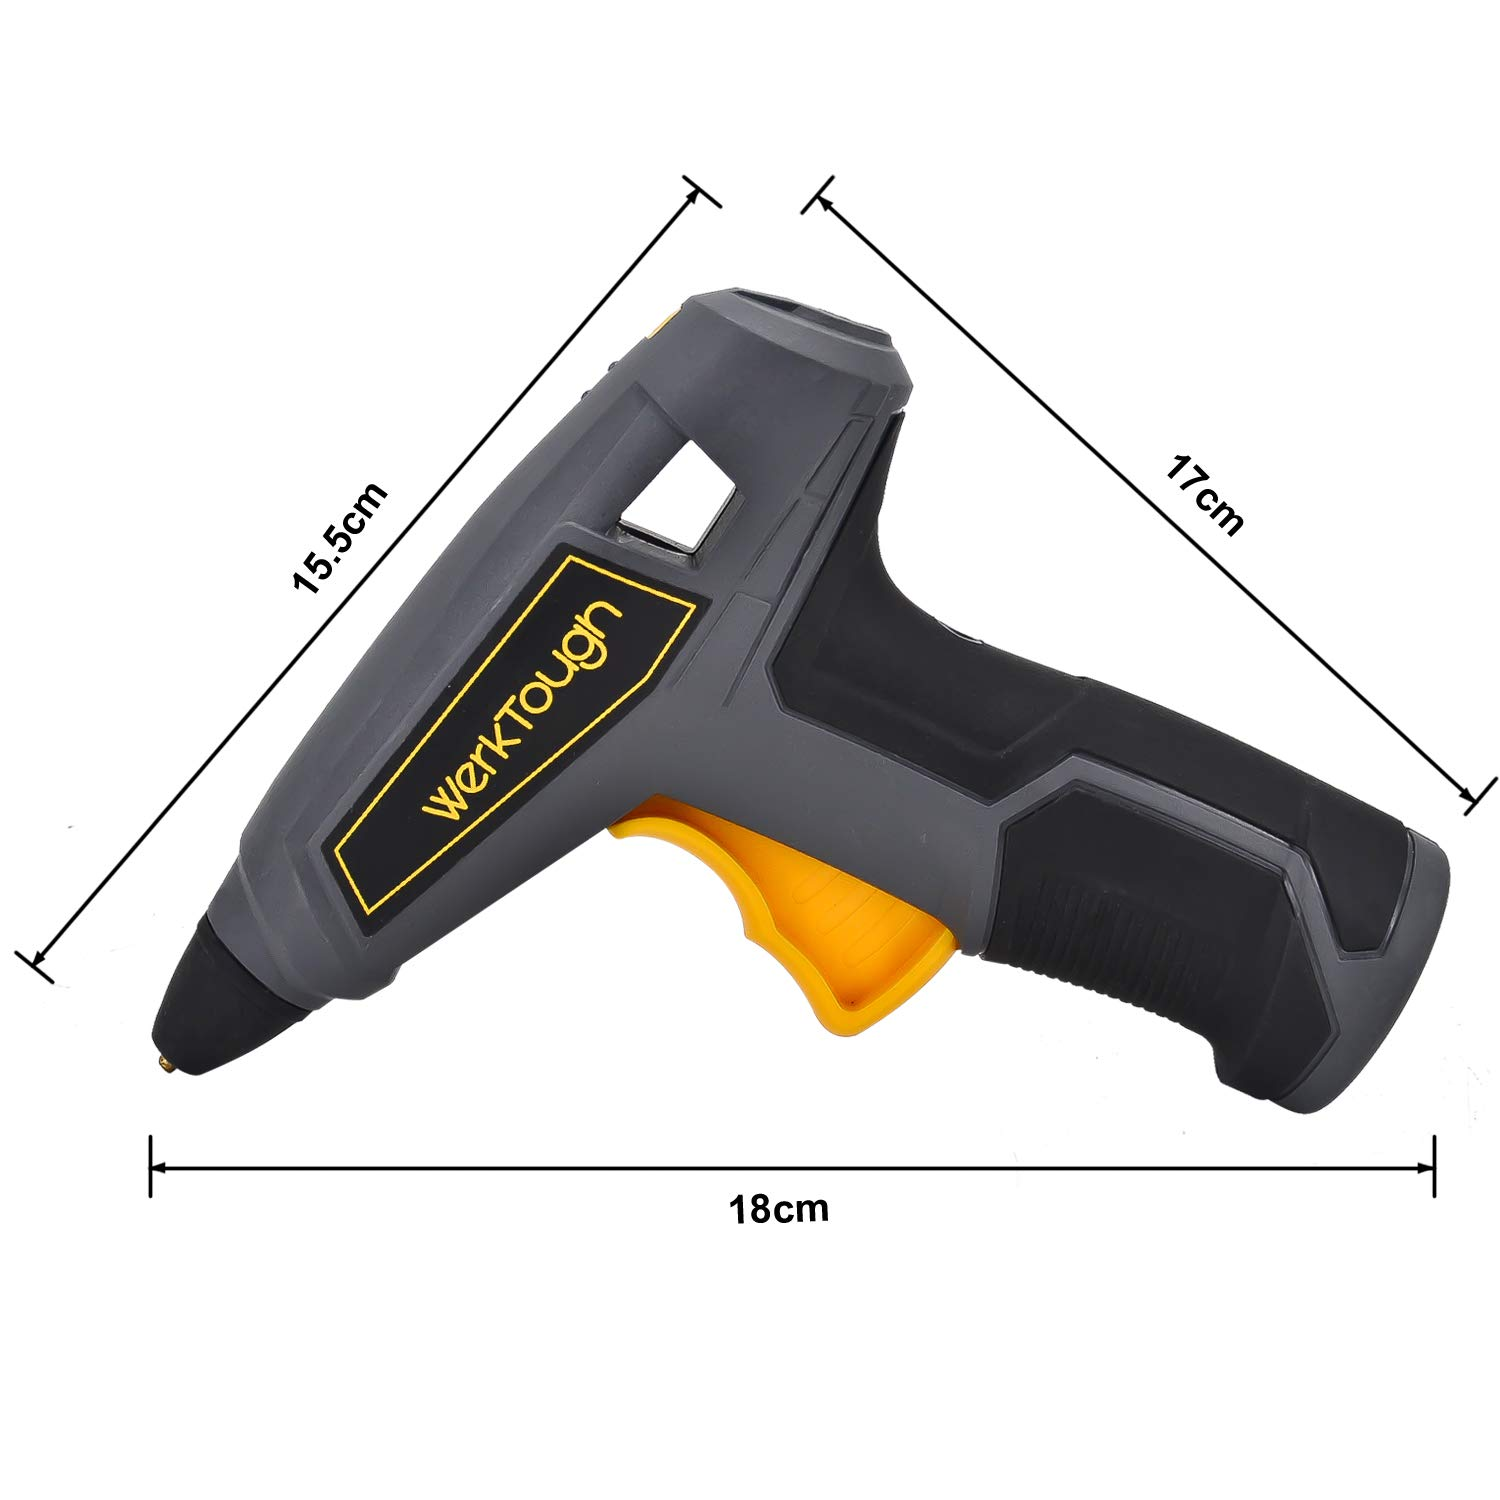 Werktough HG03 3.6V cordless glue gun Super Fast Heating 15s